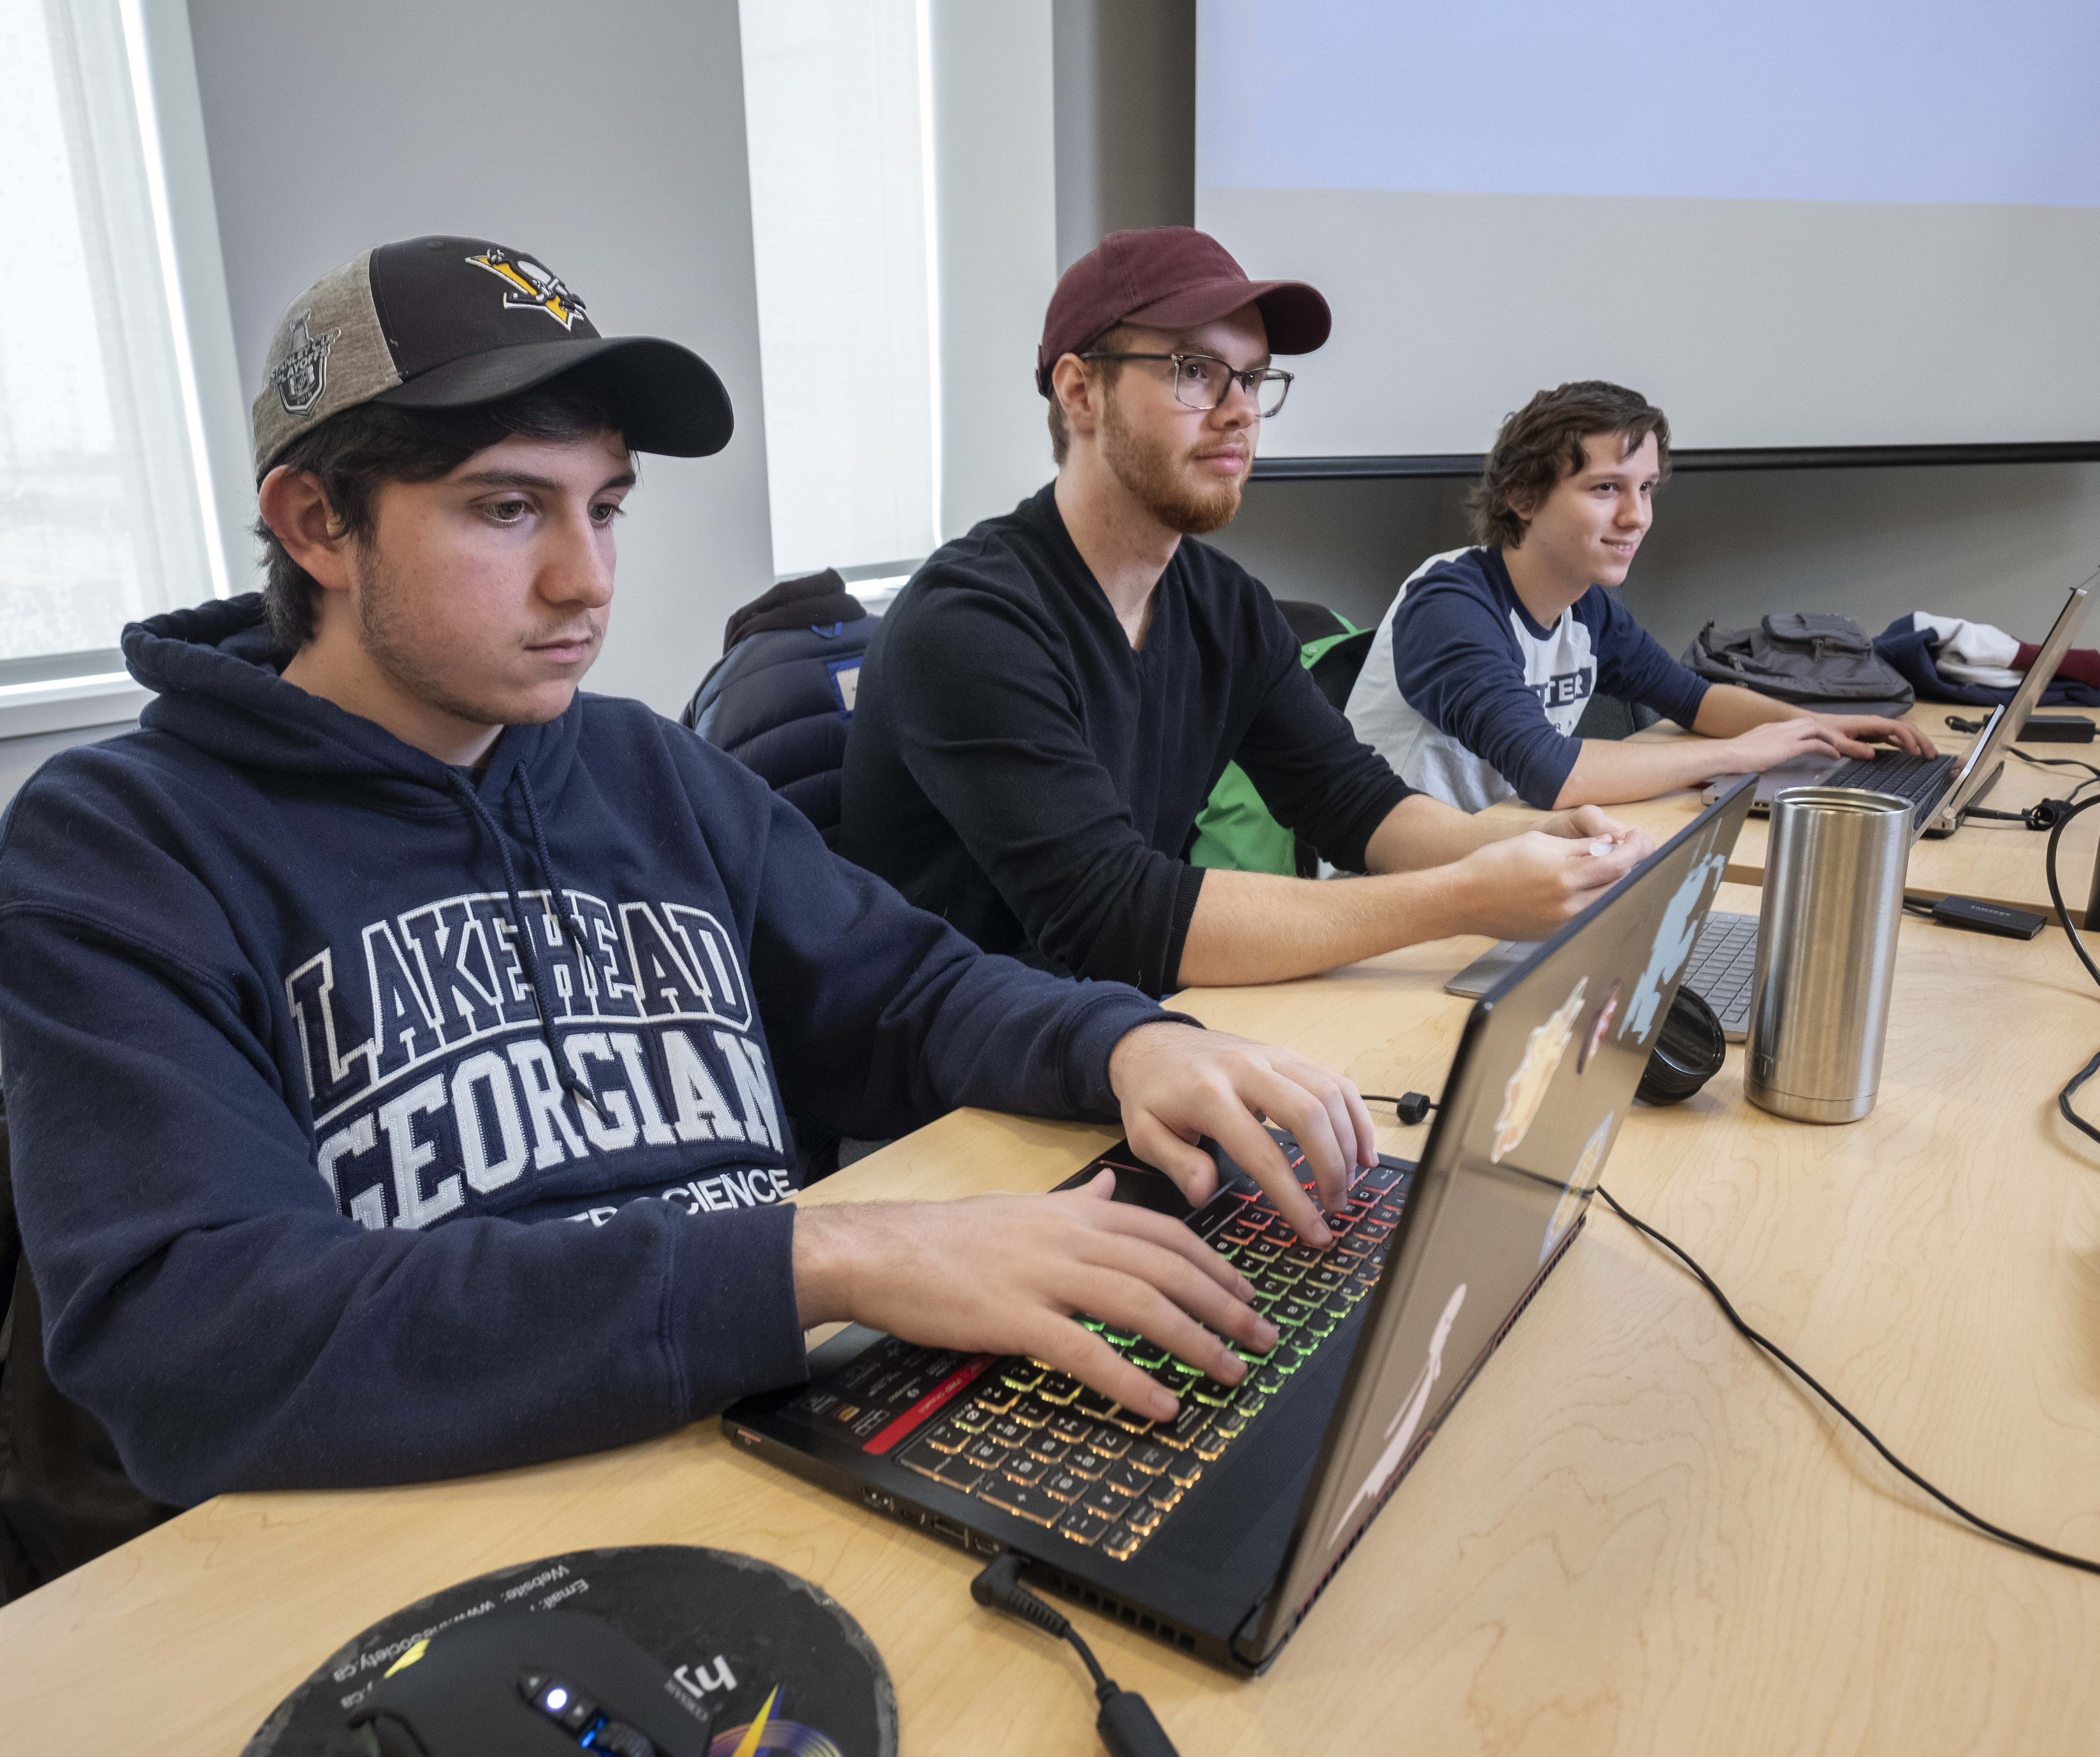 Three male students participate in computer science class